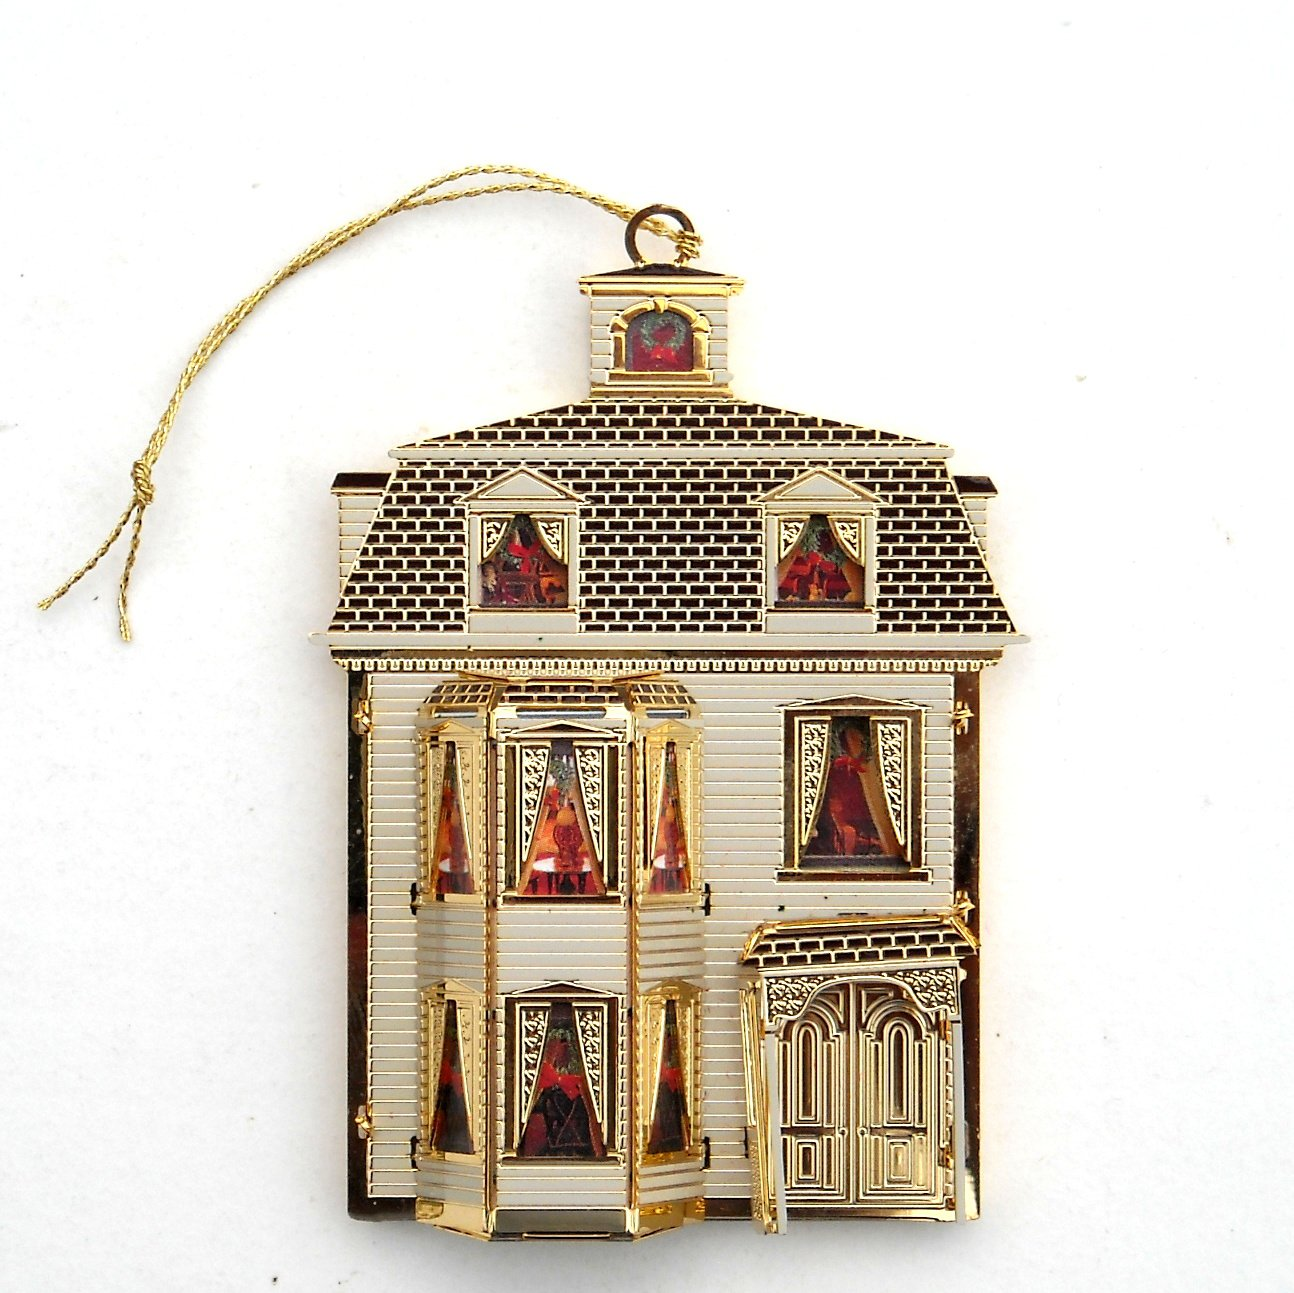 B & G Doll House Collection Gertrudes House 24k Gold Finish Christmas ornament